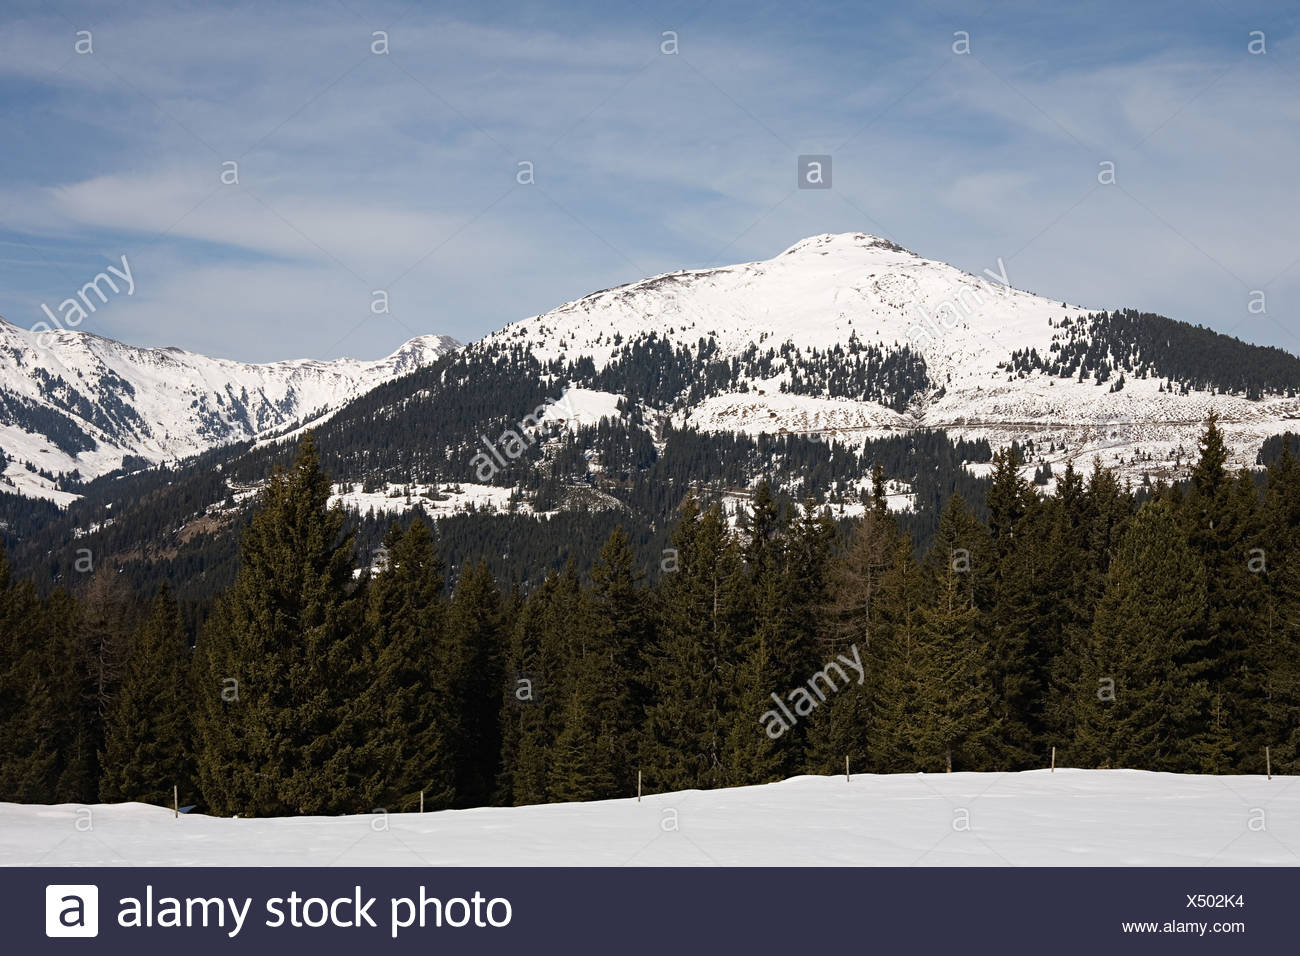 Mountain and fir trees - Stock Image